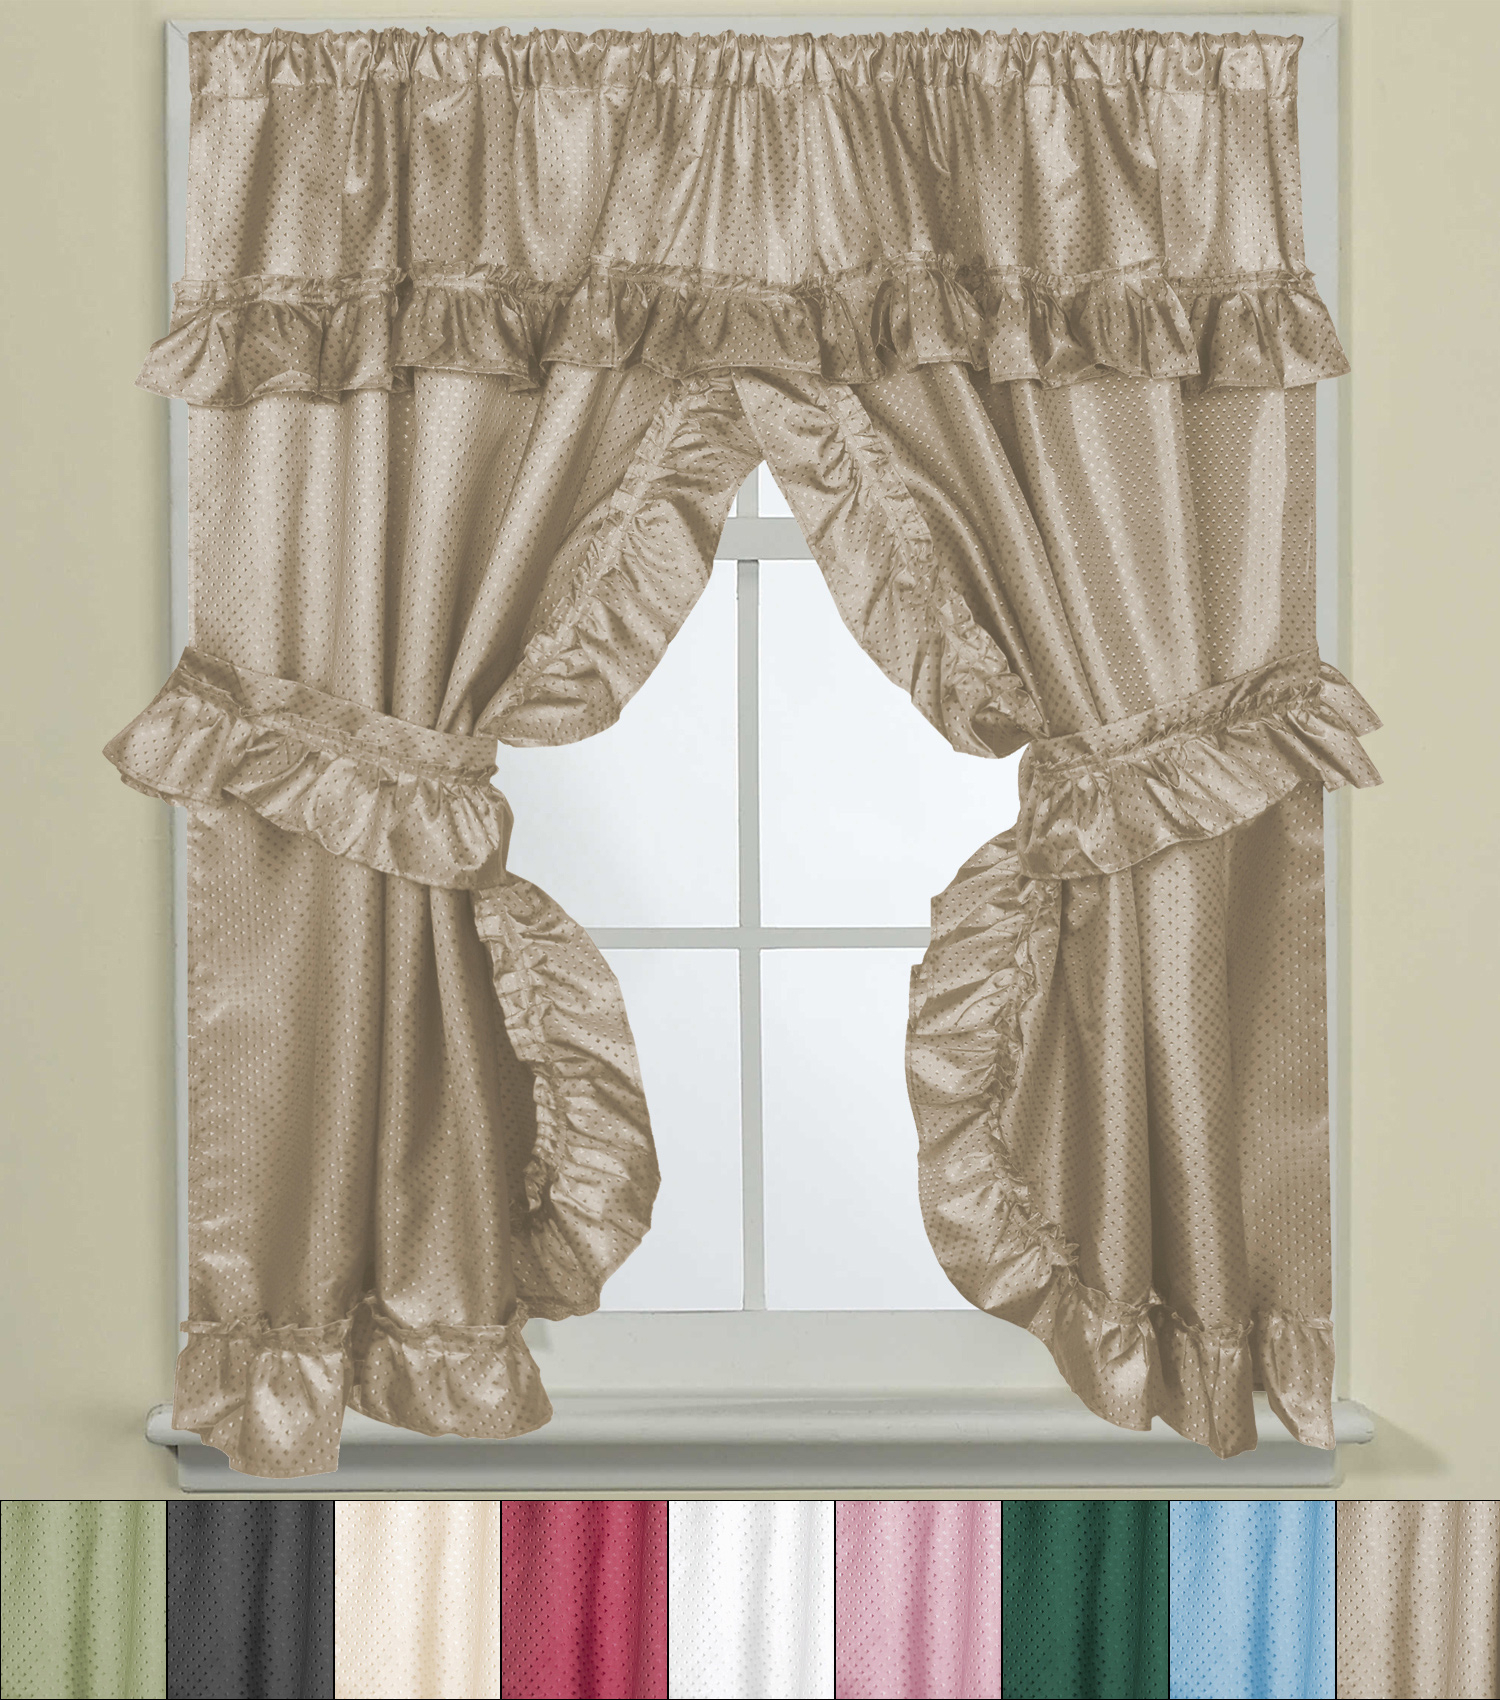 """Details About Bathroom Window Curtain Set W/tie Backs & Ruffle Valance Lauren 70""""x45"""" With Regard To Classic Hotel Quality Water Resistant Fabric Curtains Set With Tiebacks (View 8 of 20)"""